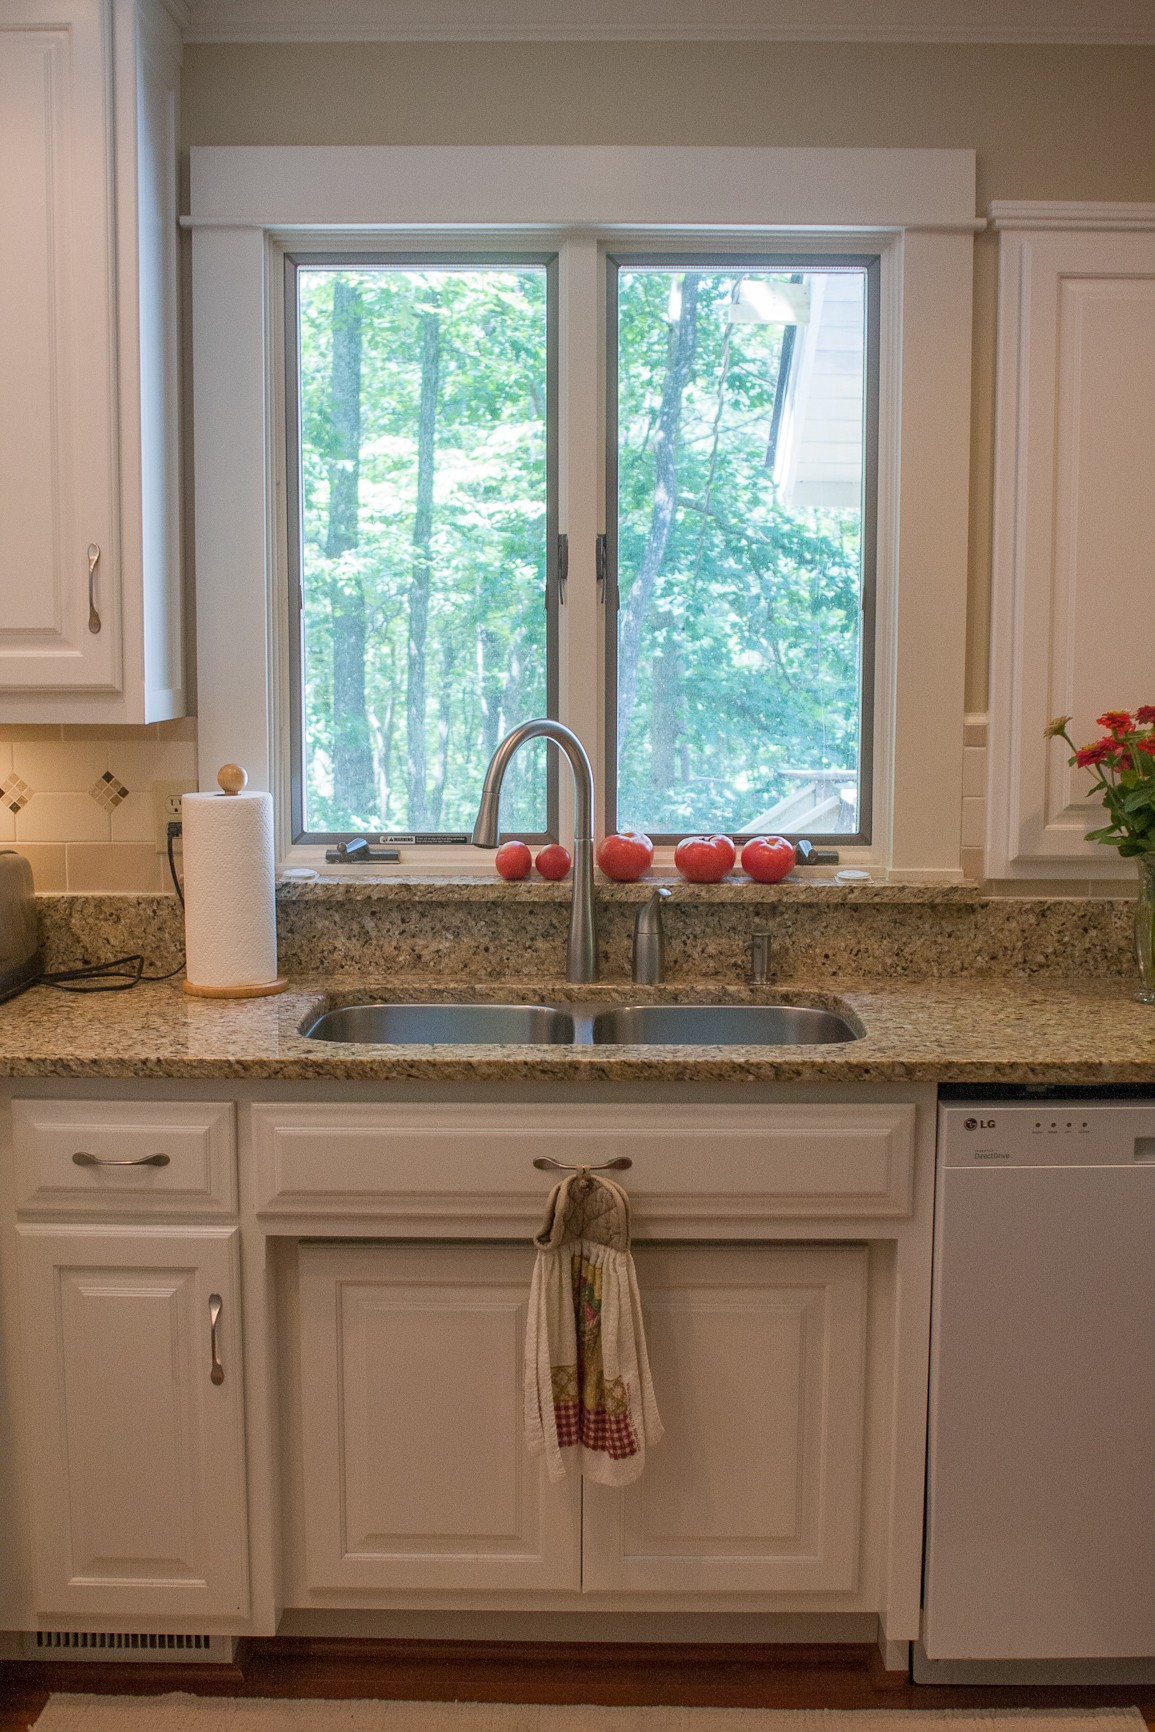 Monteagle & Sewanee Kitchen Remodel & Bathroom Remodel